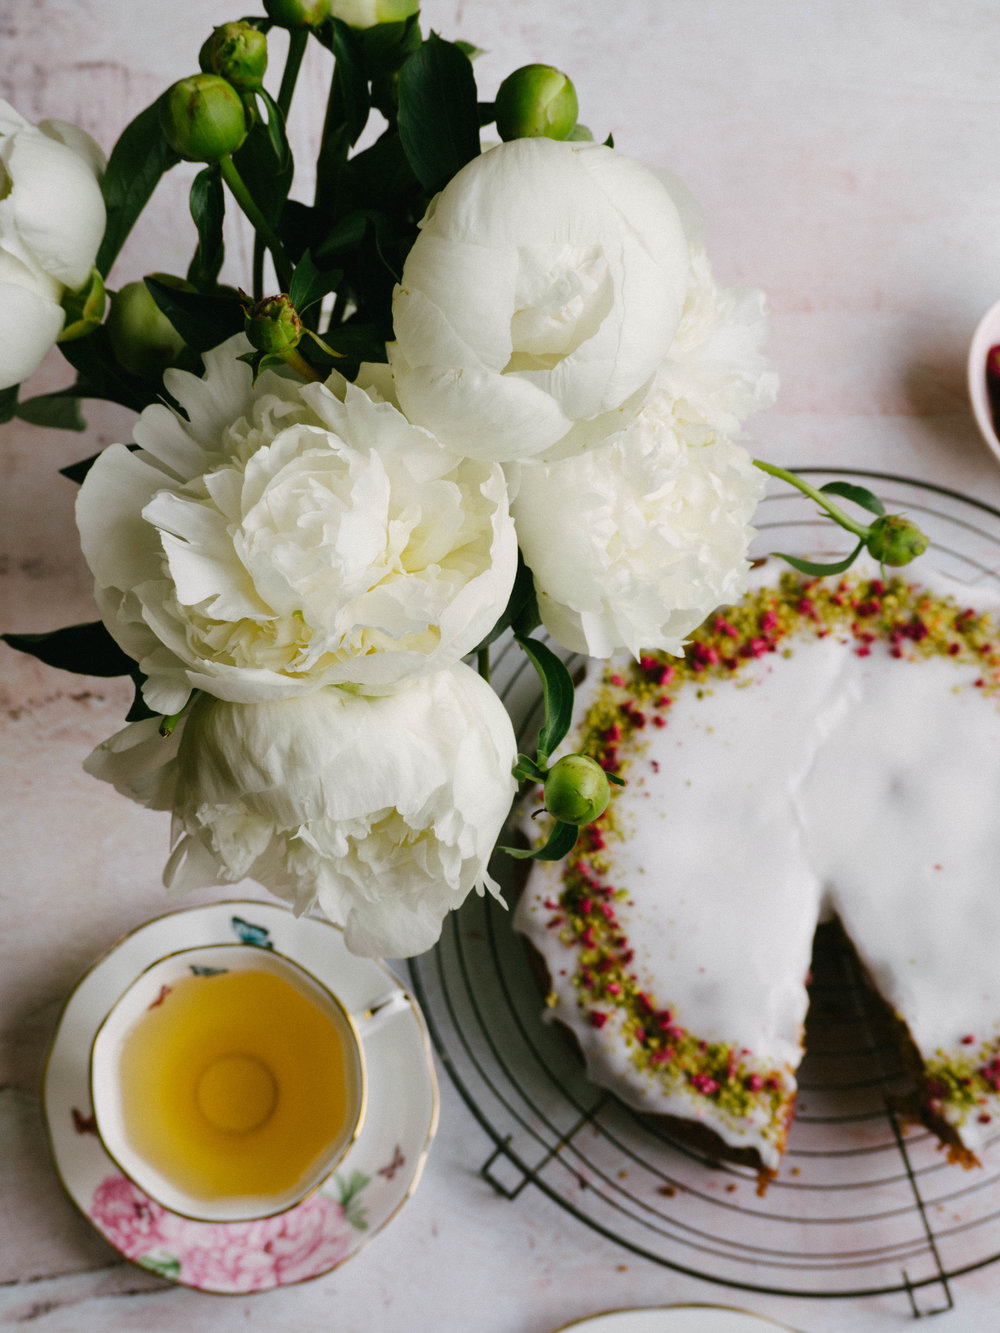 Pistachio Raspberry & Rose Cake with White Peonies